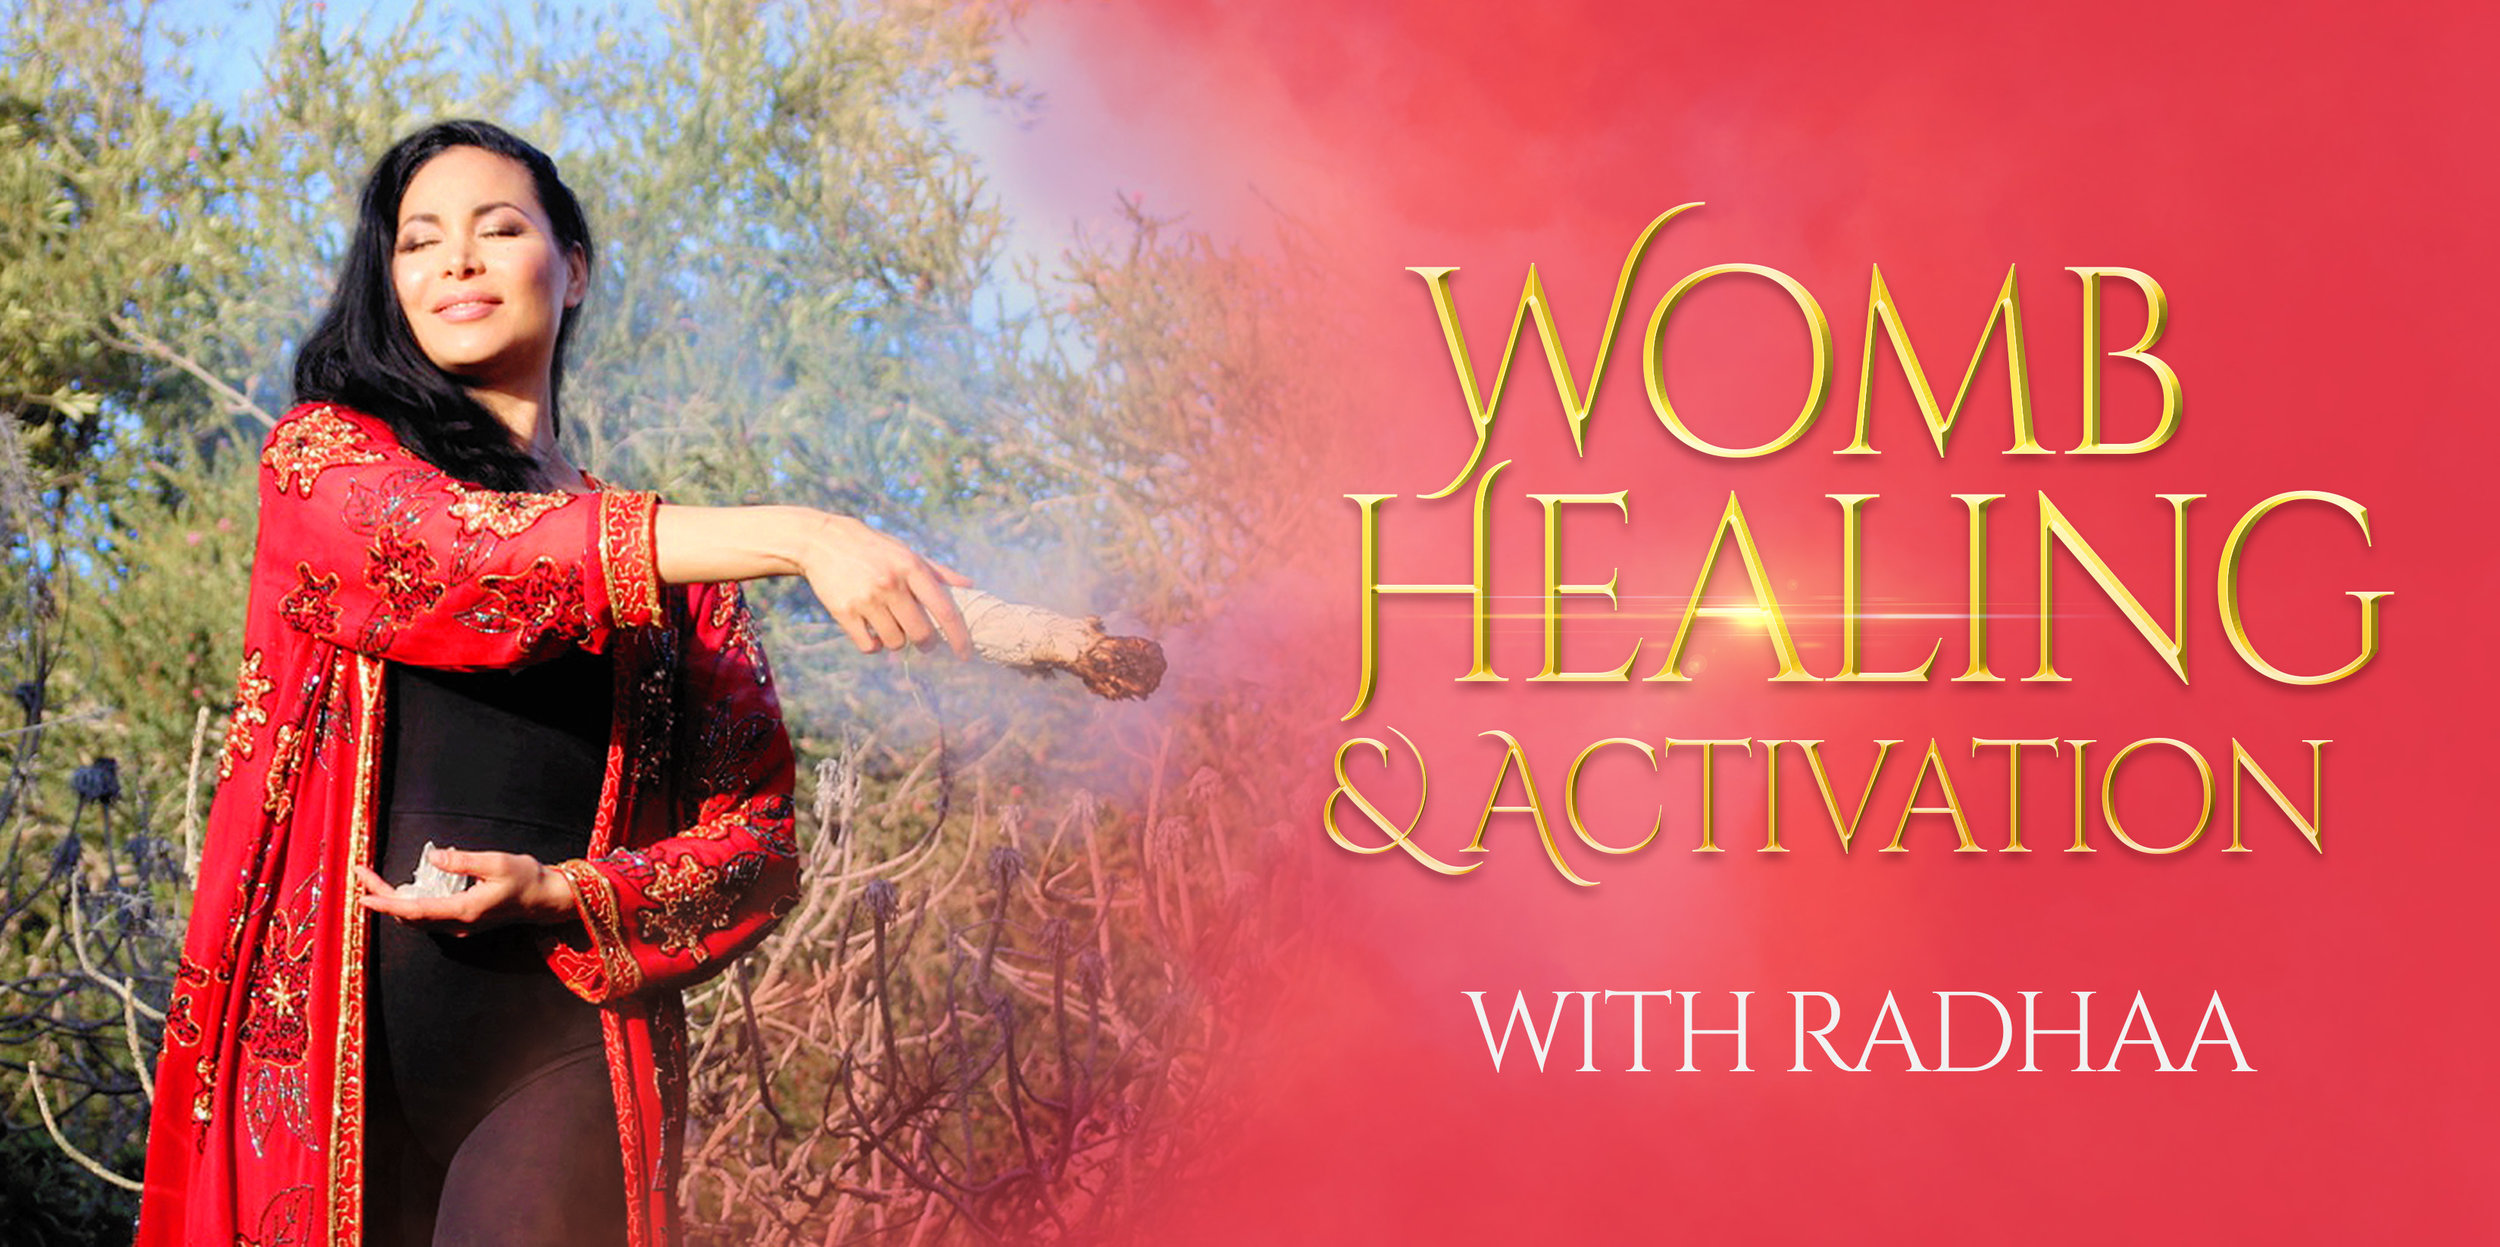 Womb Healing Activation with Radhaa.jpg